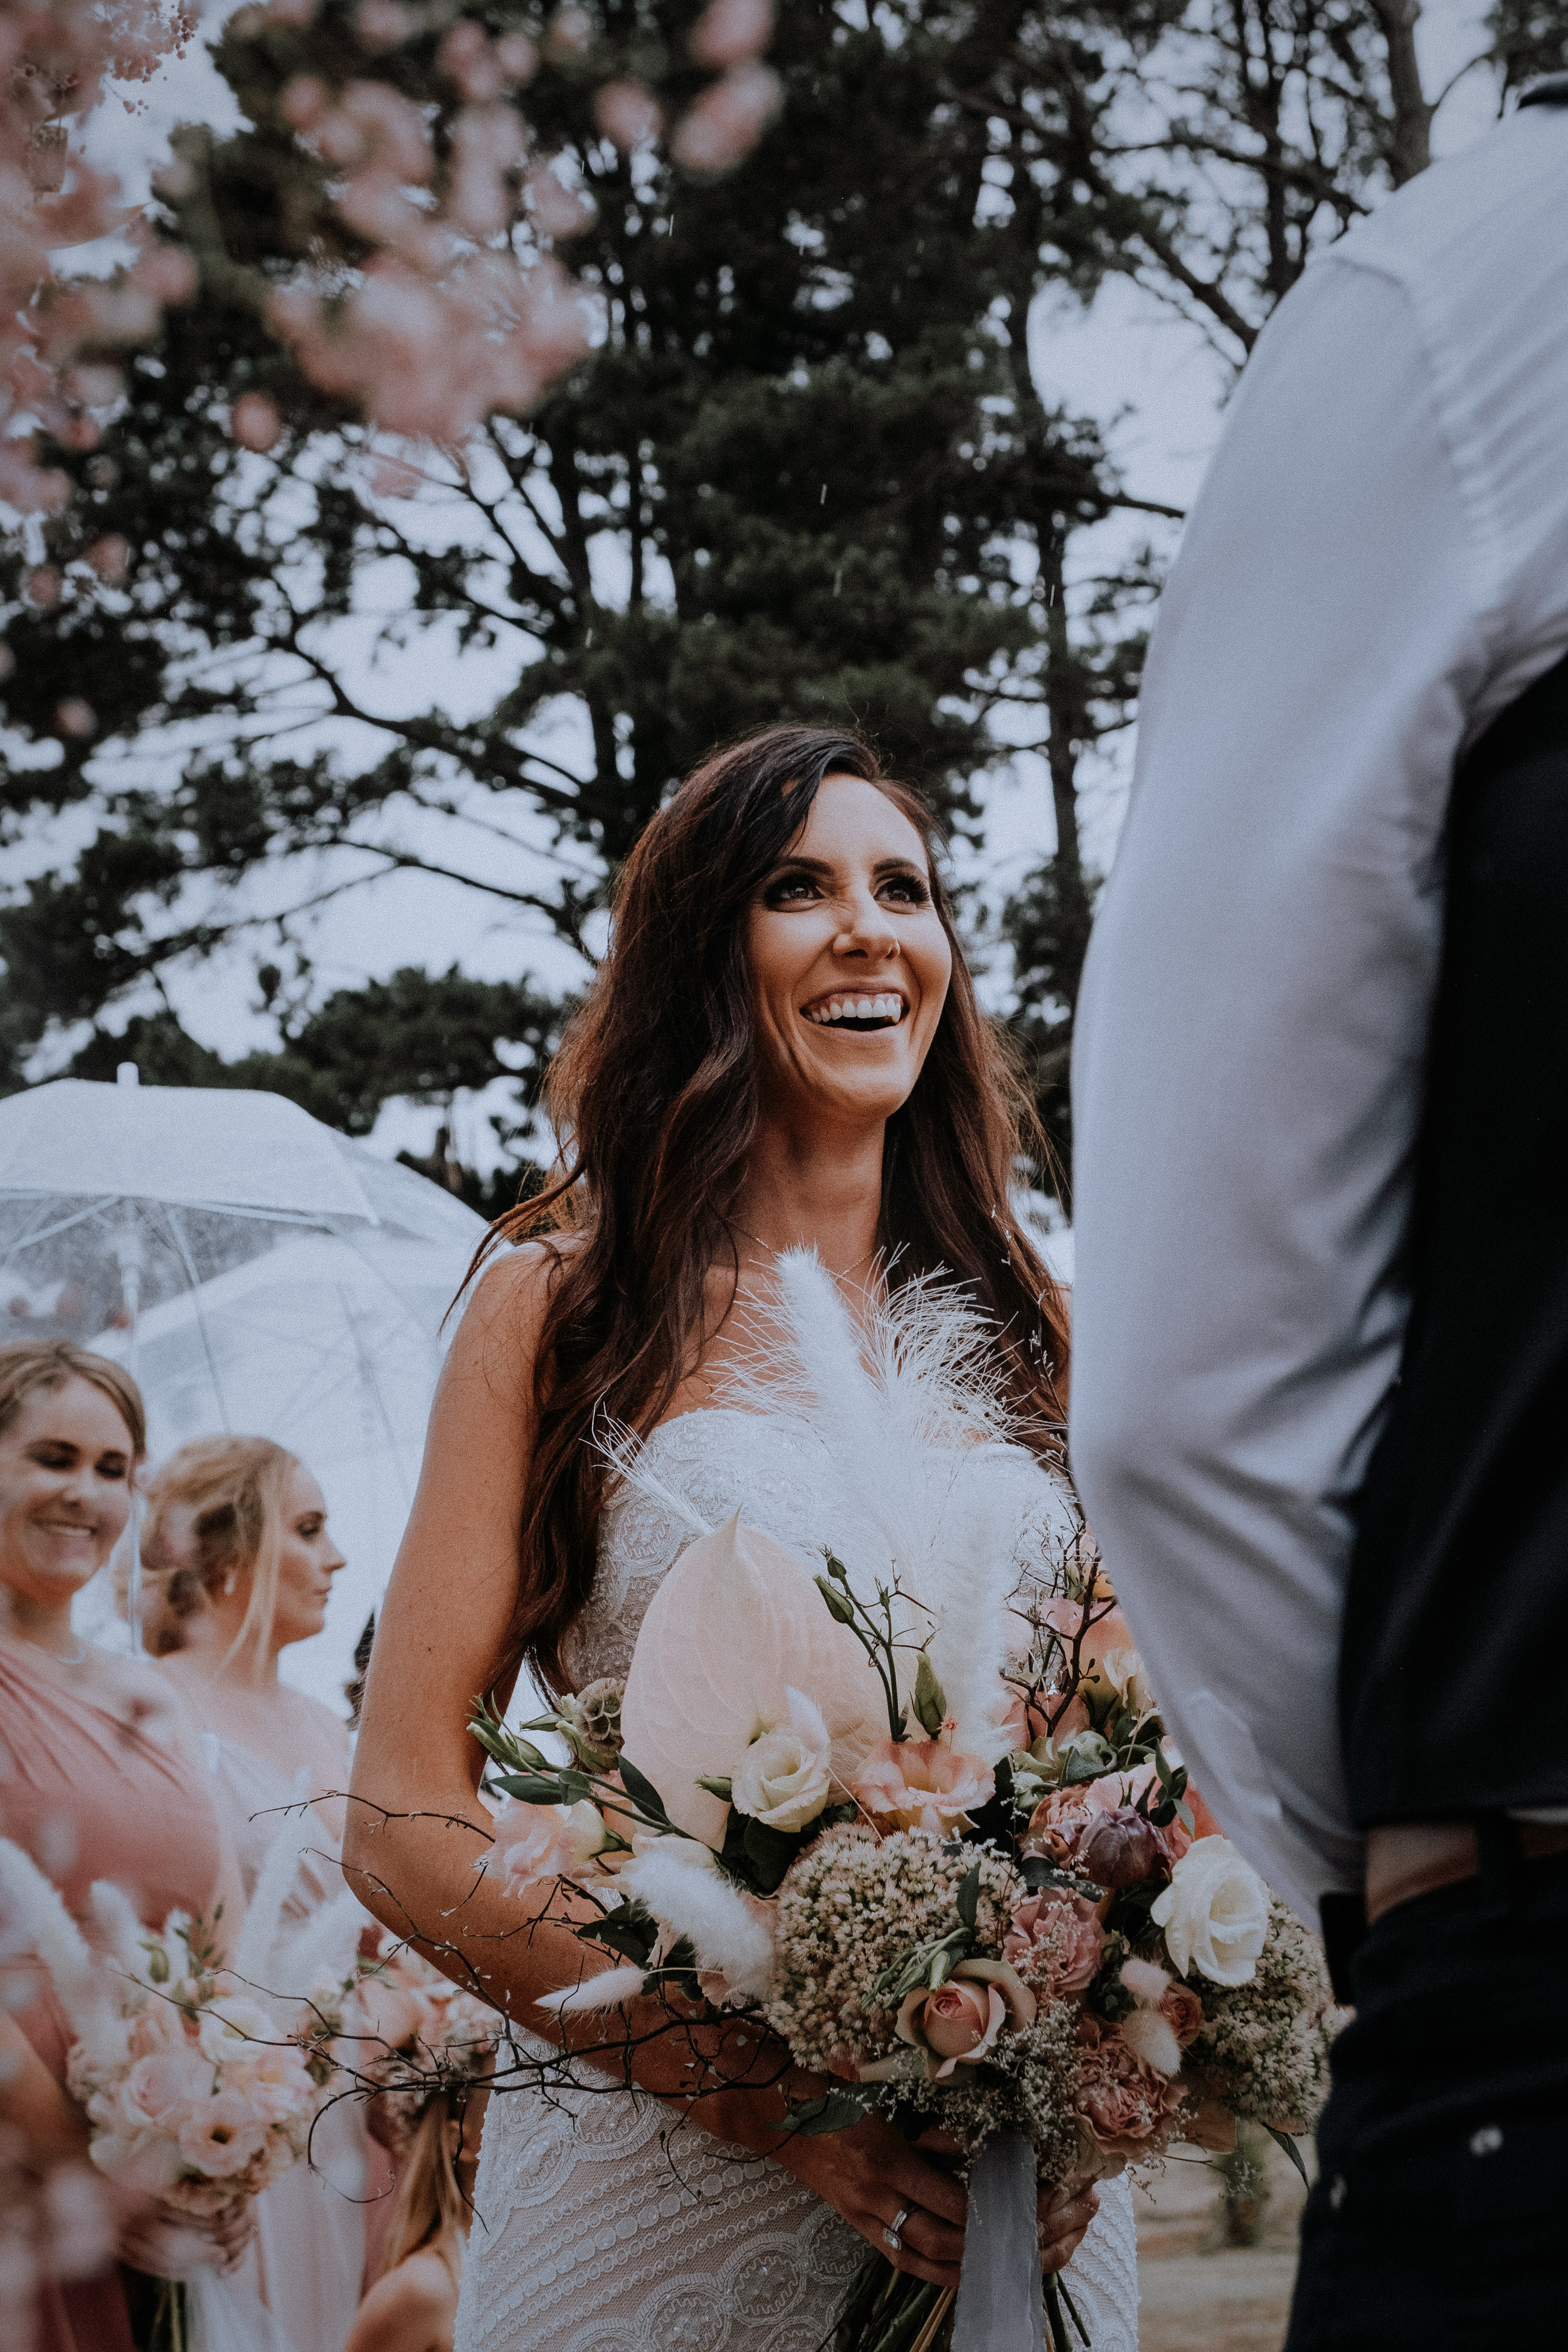 An ecstatic bride during her rainy outdoor wedding at Seclusions Blue Mountains